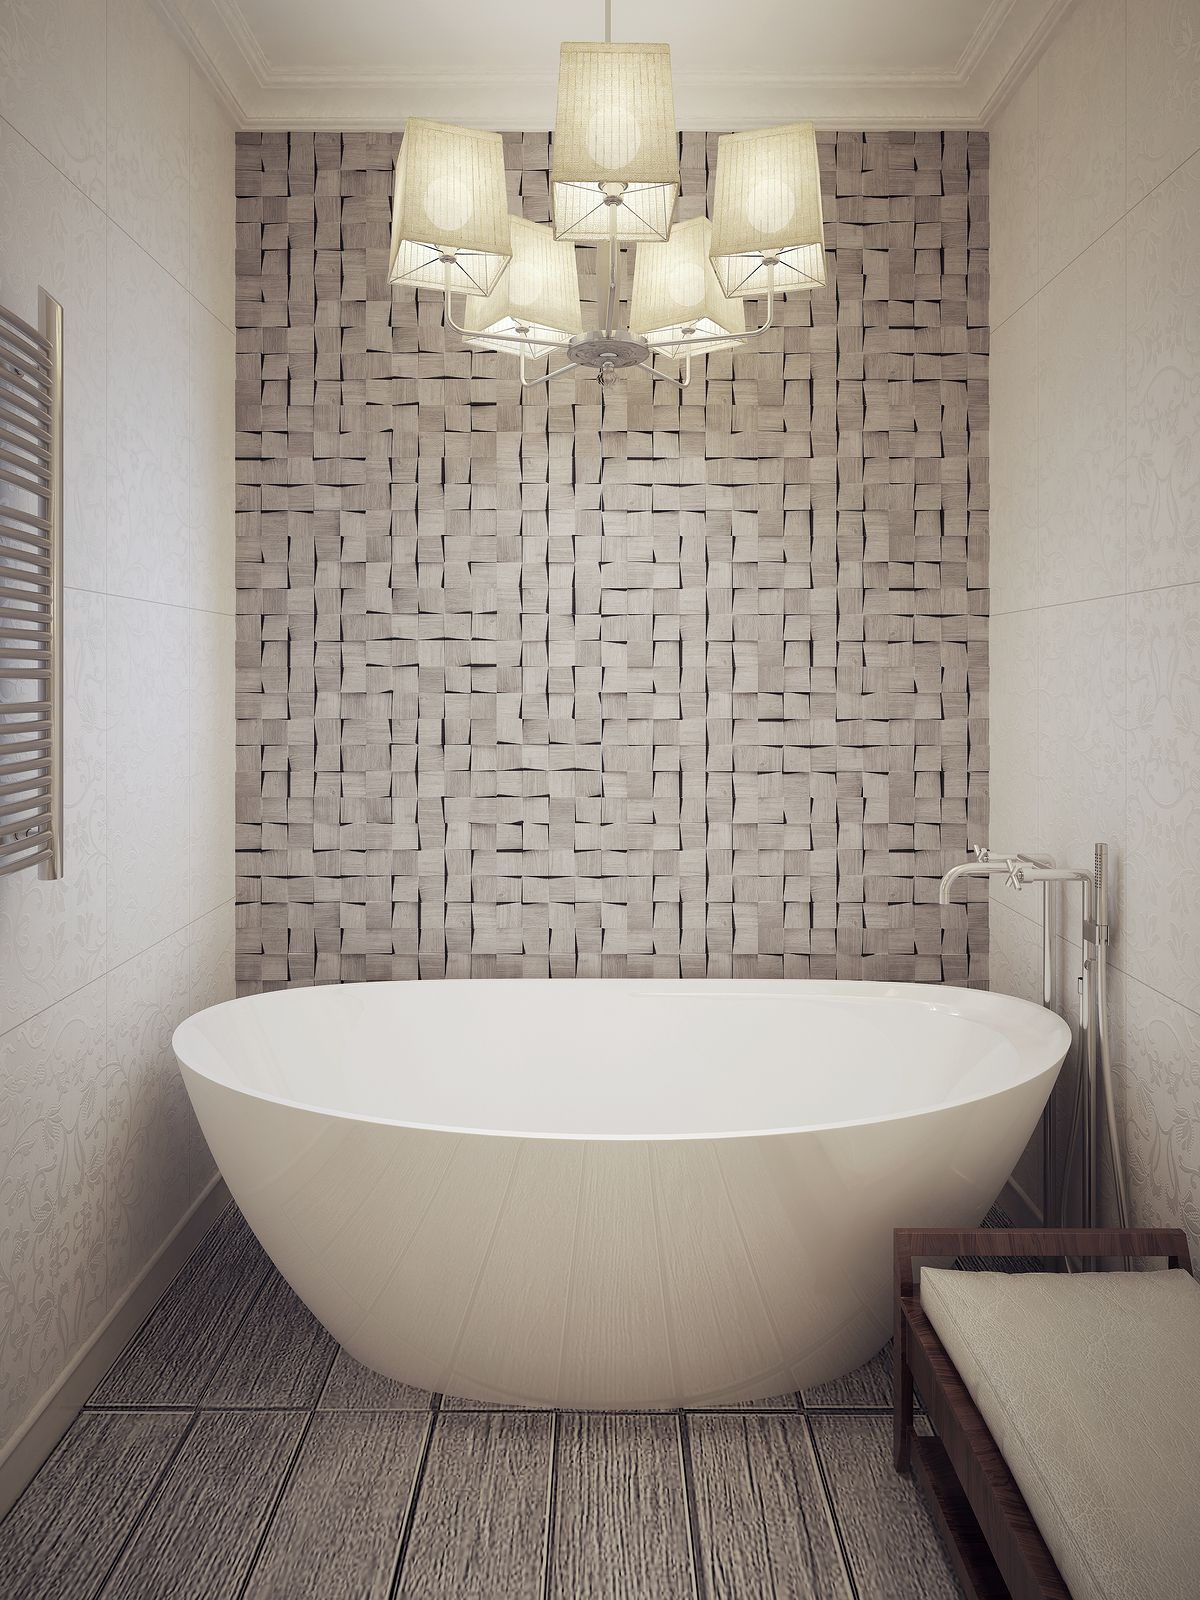 How to Accessorize around your Freestanding Tub